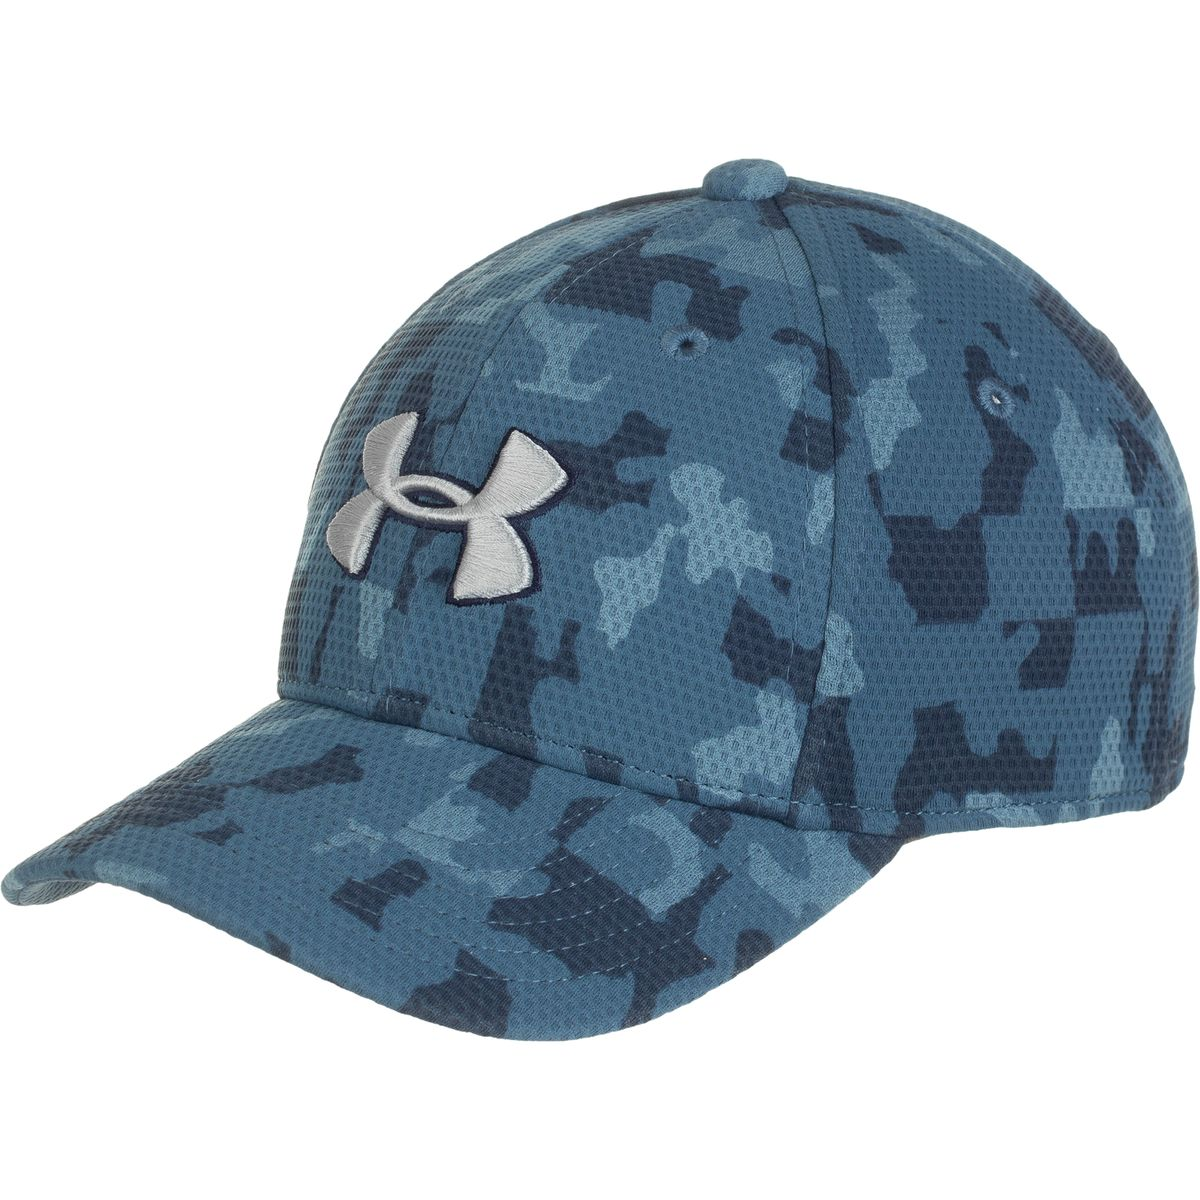 Under Armour Printed Blitzing Cap - Kids